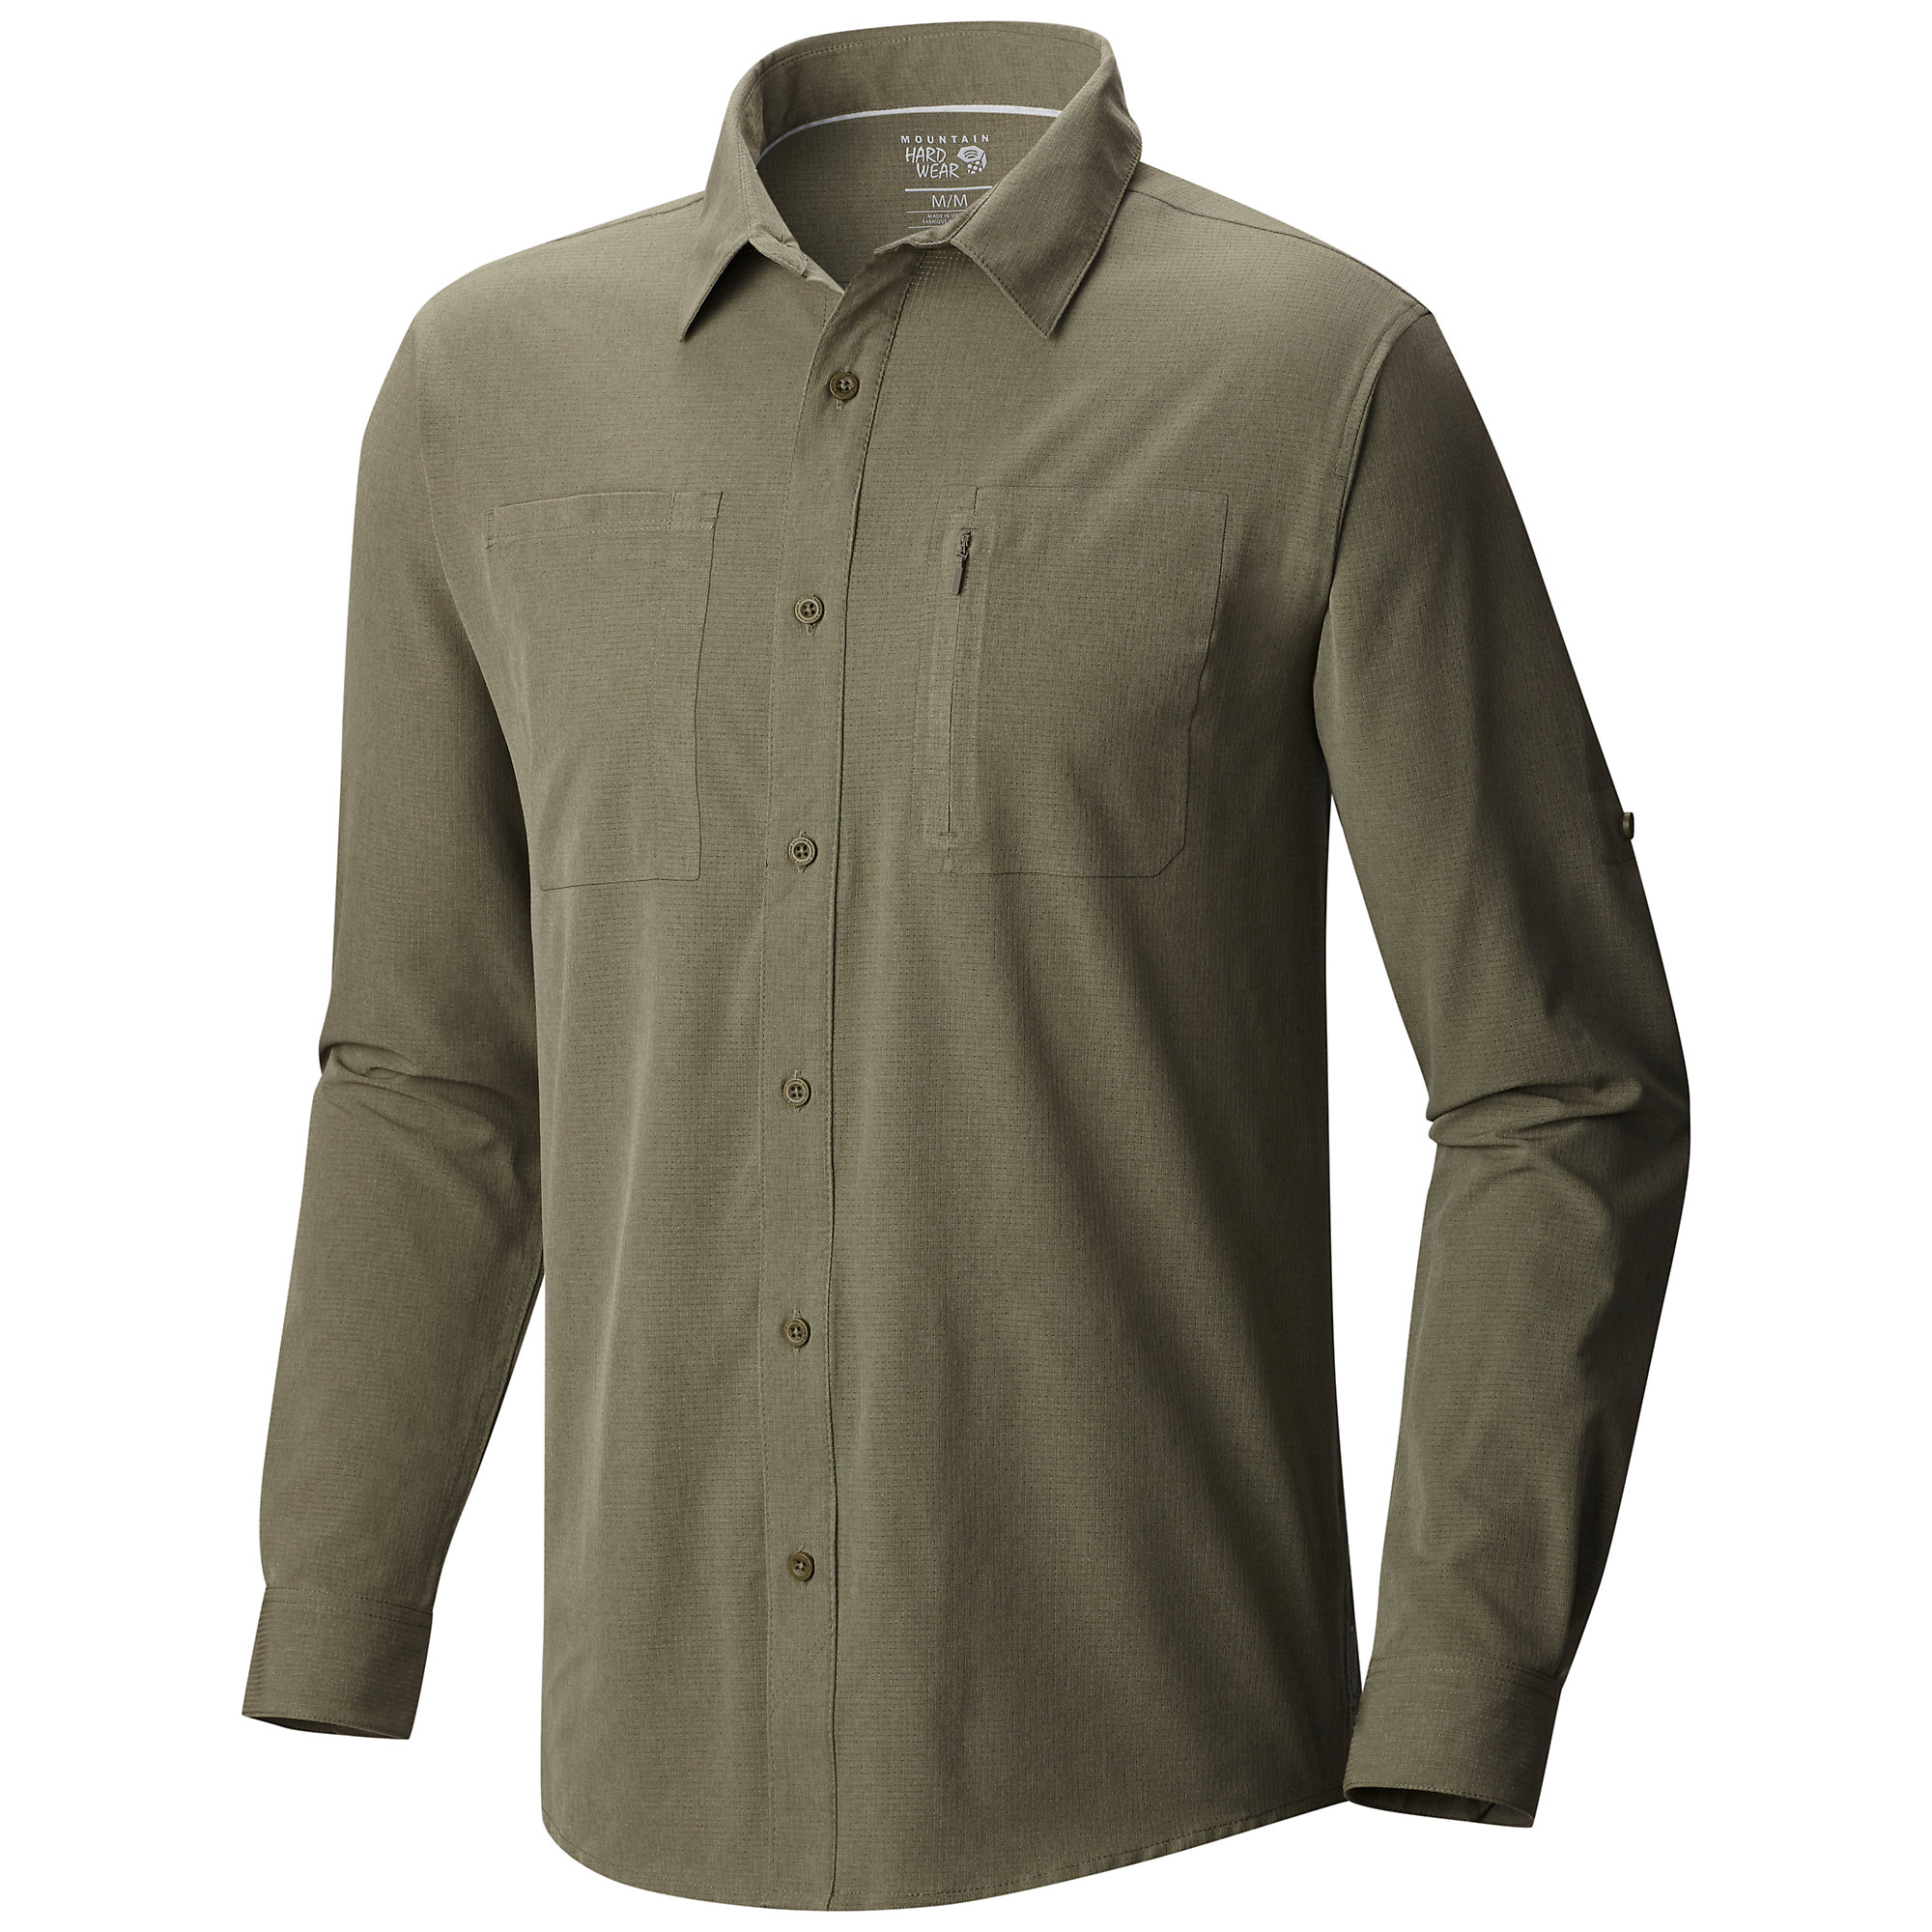 Mountain Hardwear Air Tech Long Sleeve Shirt